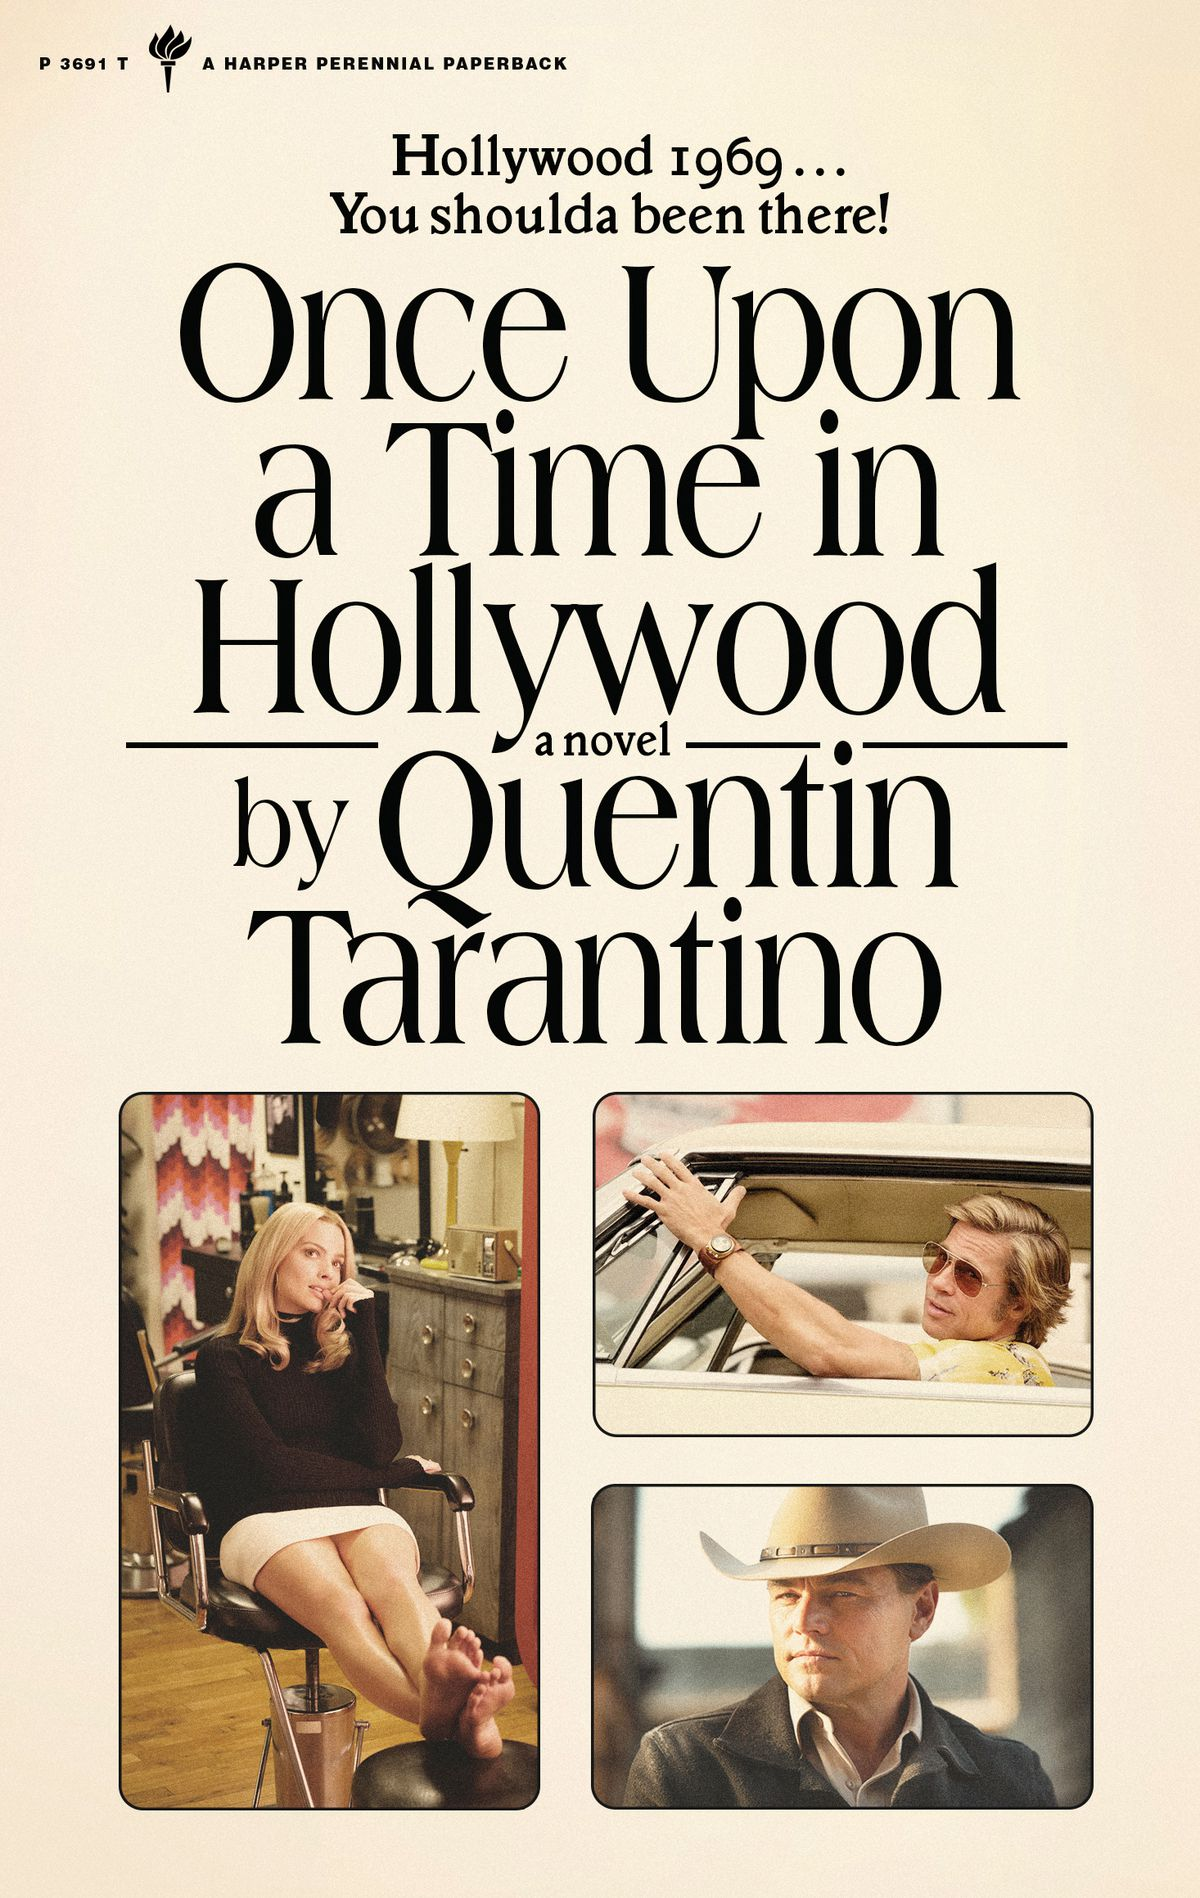 The cover of the novelization of Quentin Tarantino's 2019 movie